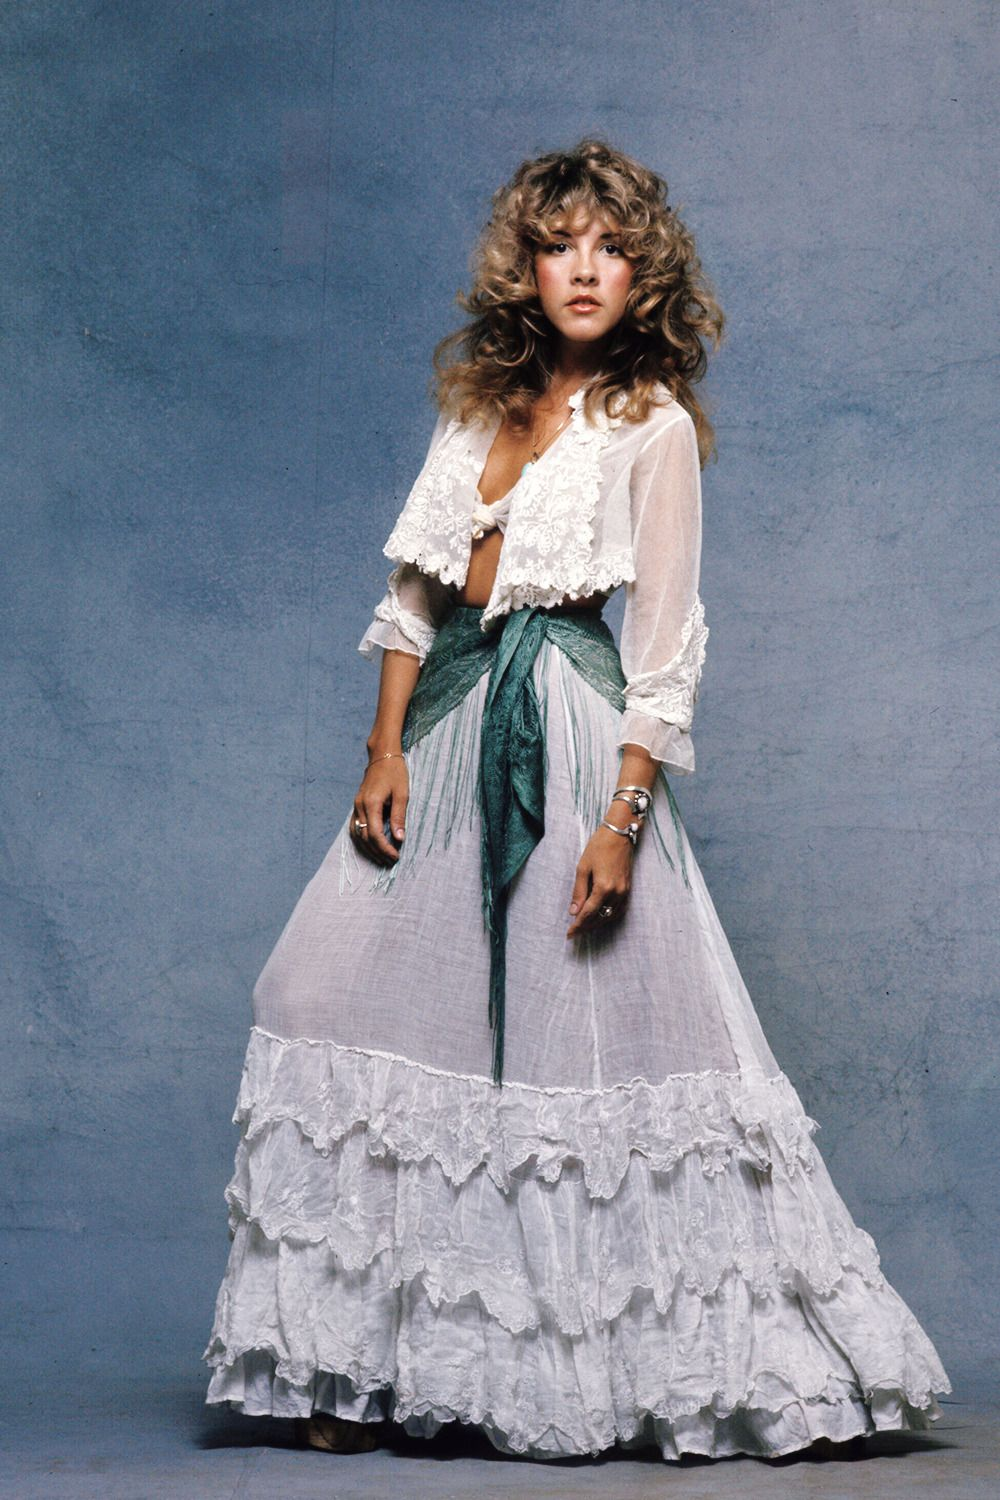 Stevie Nicks Photographed By Sam Emerson In 1977 Stevie Nicks Style Stevie Nicks Fashion [ 1500 x 1000 Pixel ]